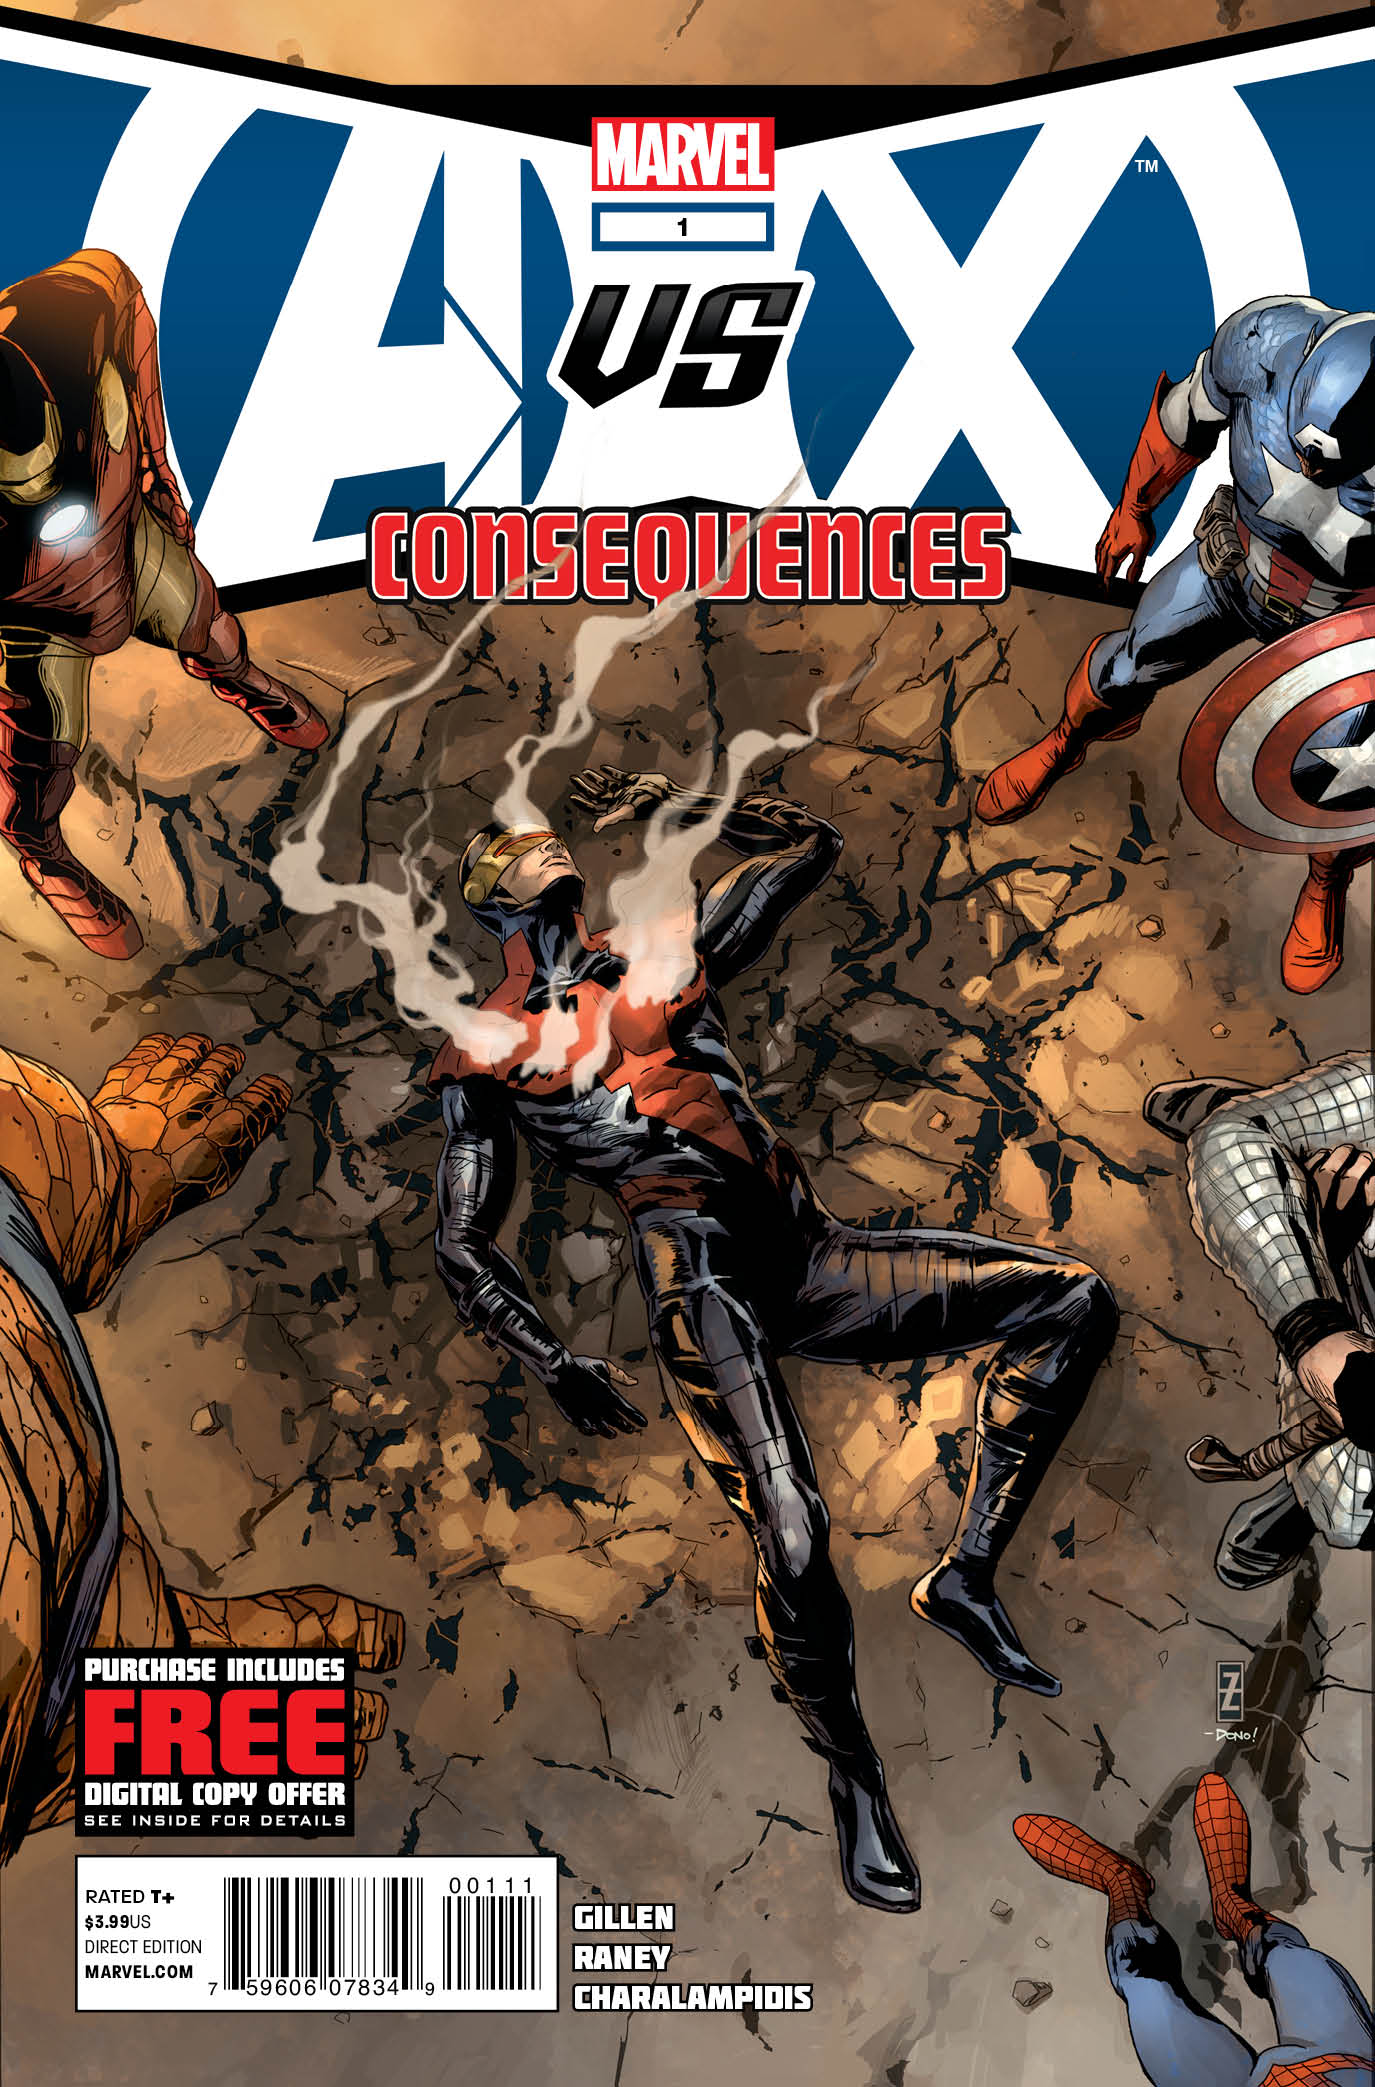 Marvel Reveals Cover To AVENGERS VS. X-MEN: CONSEQUENCES #1